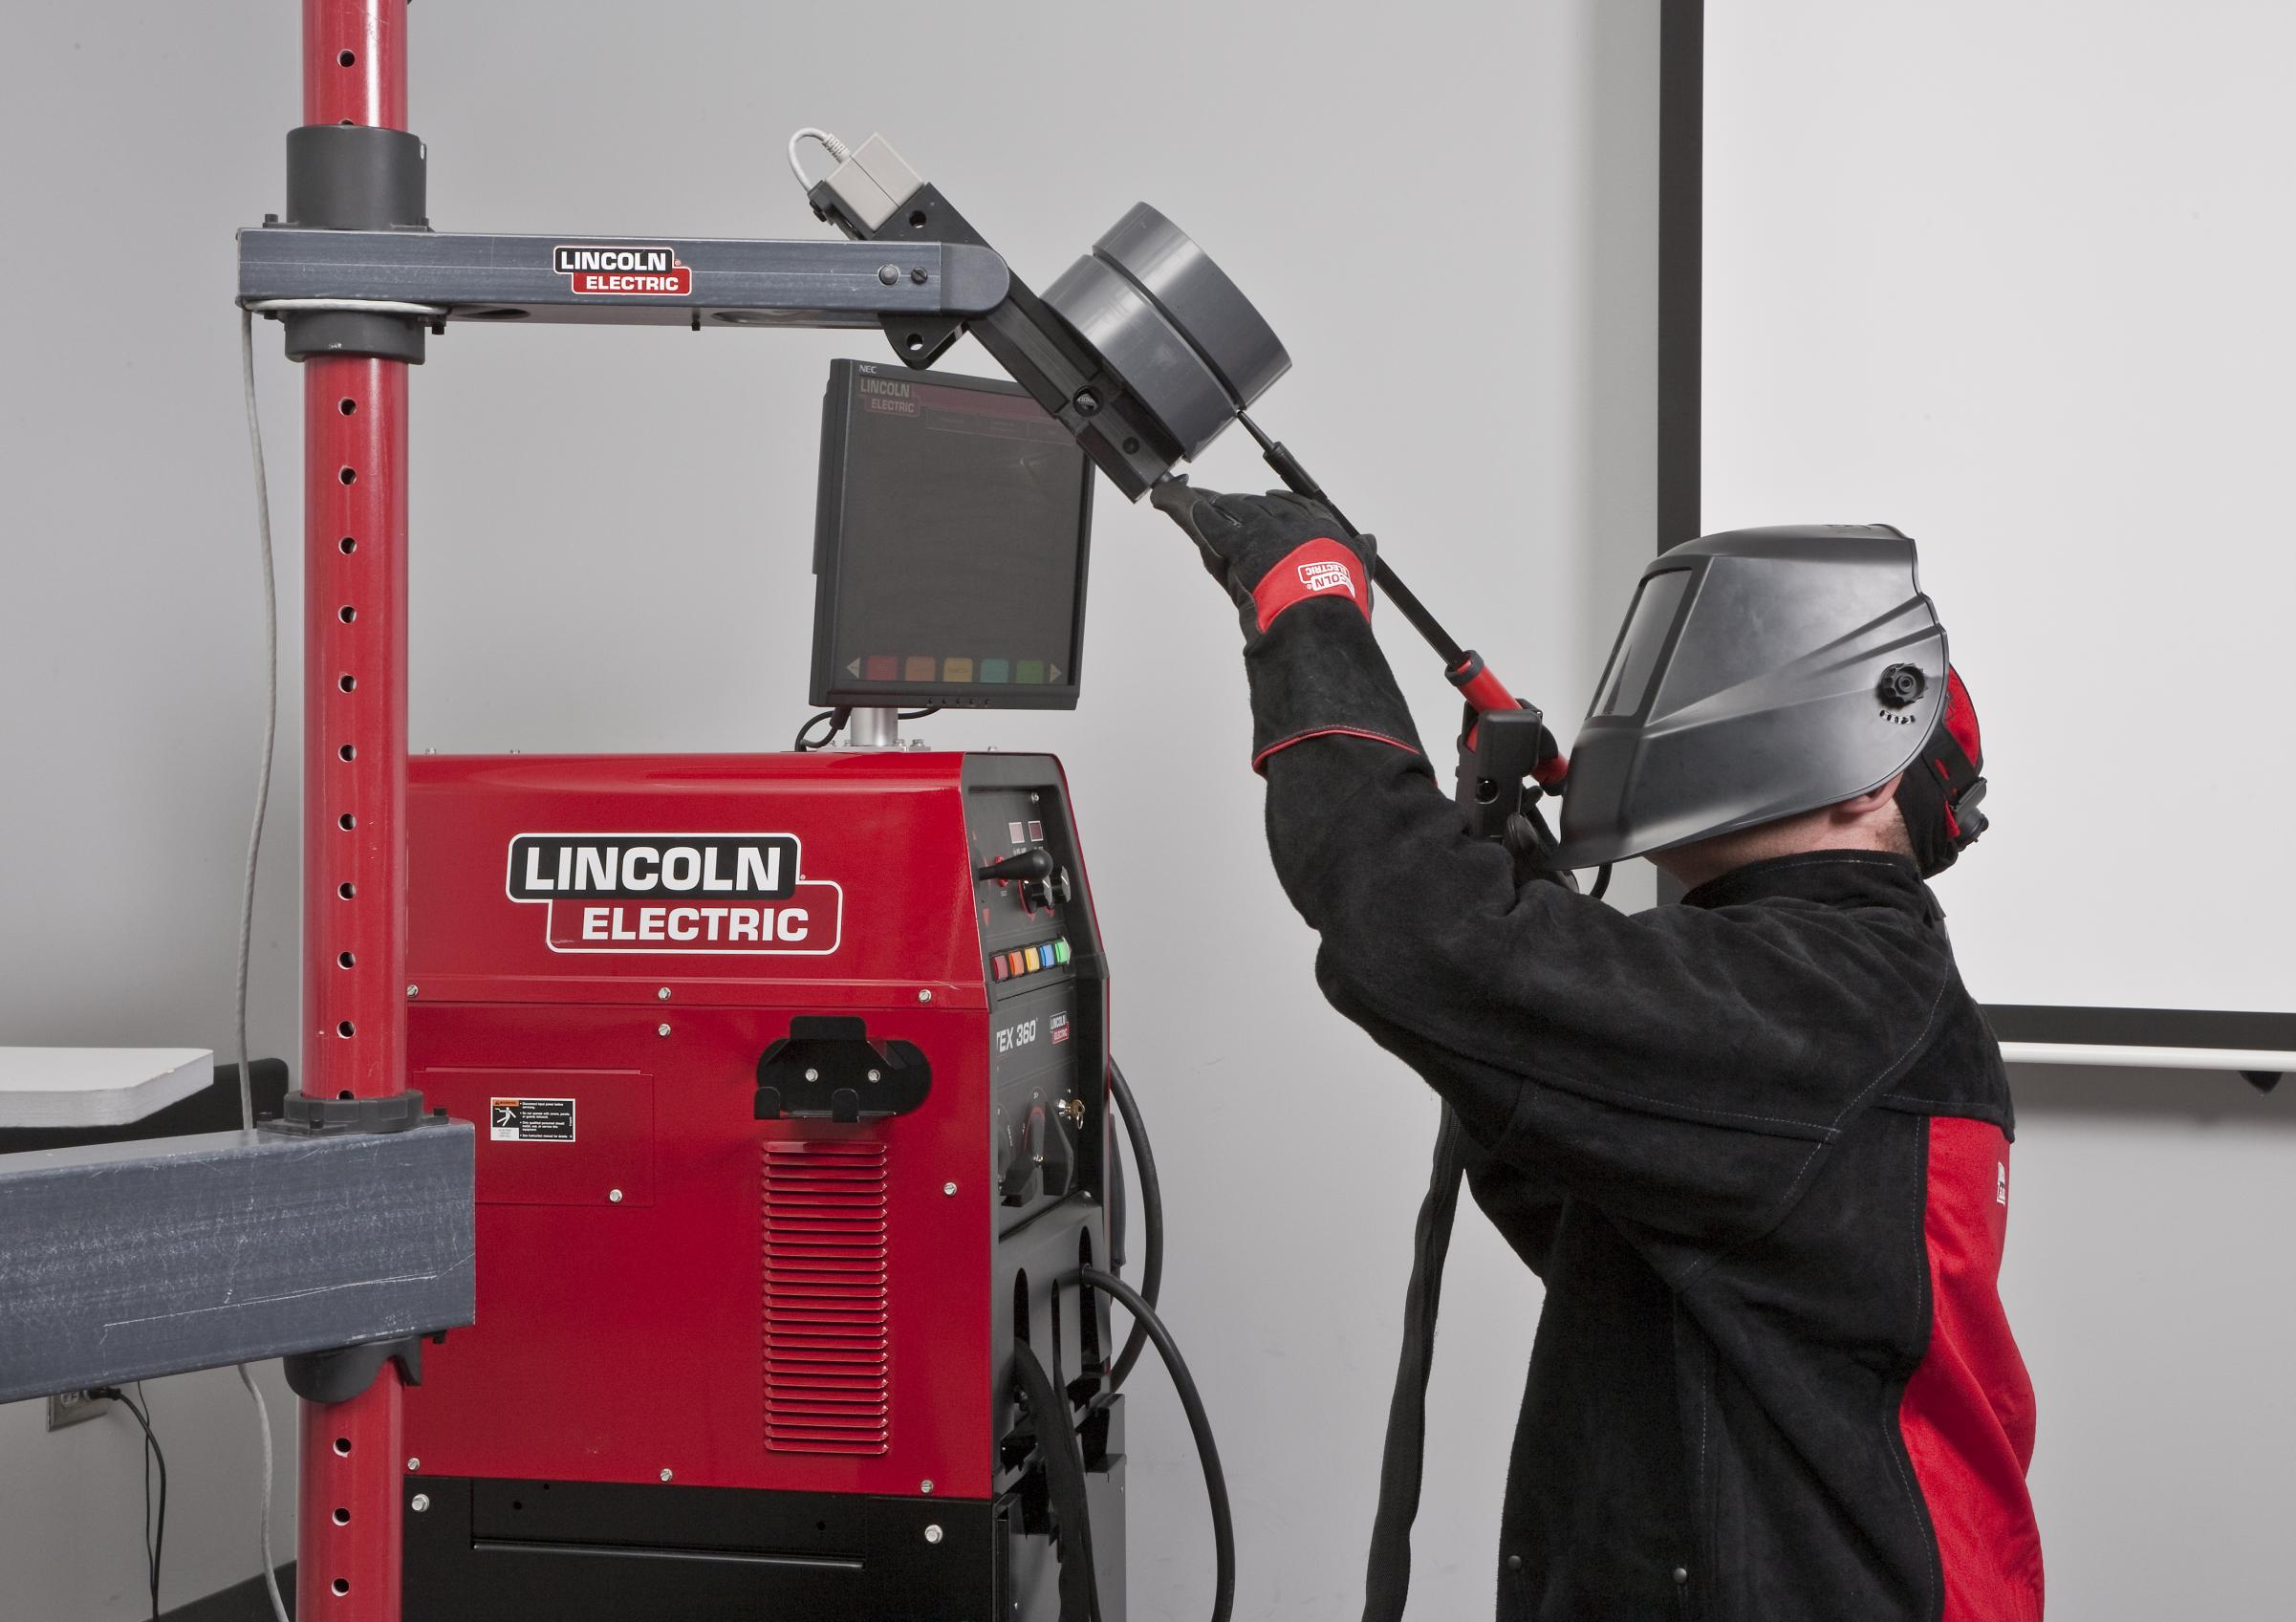 Classic Shop Talk Welding Technical Help From Lincoln Electric Stick Welder Takes Its Innovative Vrtex 360 Virtual Reality Arc On The Road